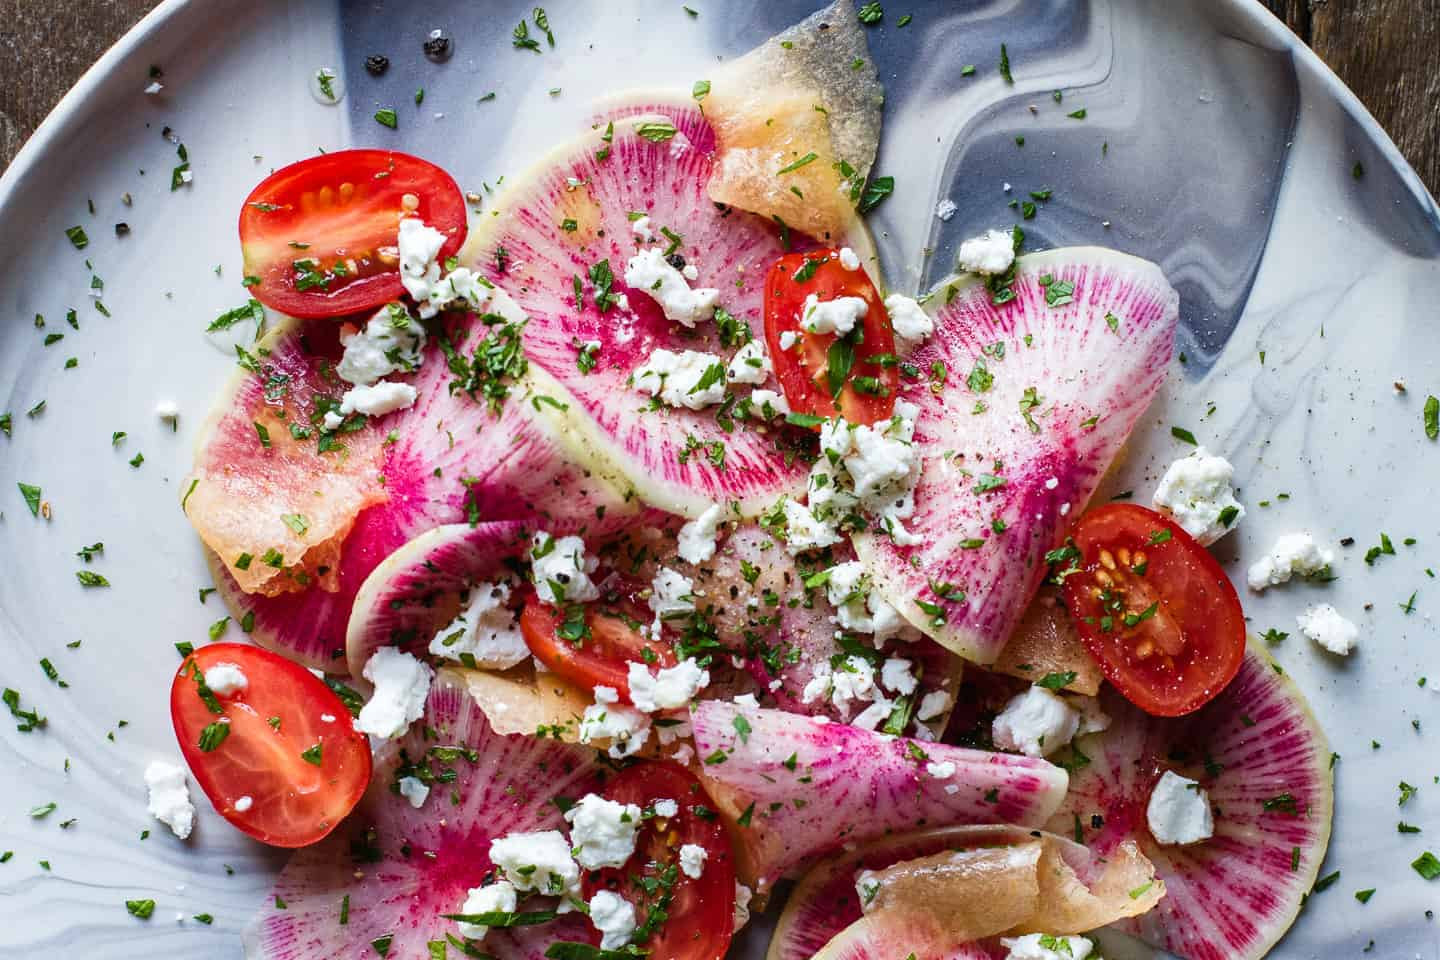 Watermelon Radish Salad + Pickles